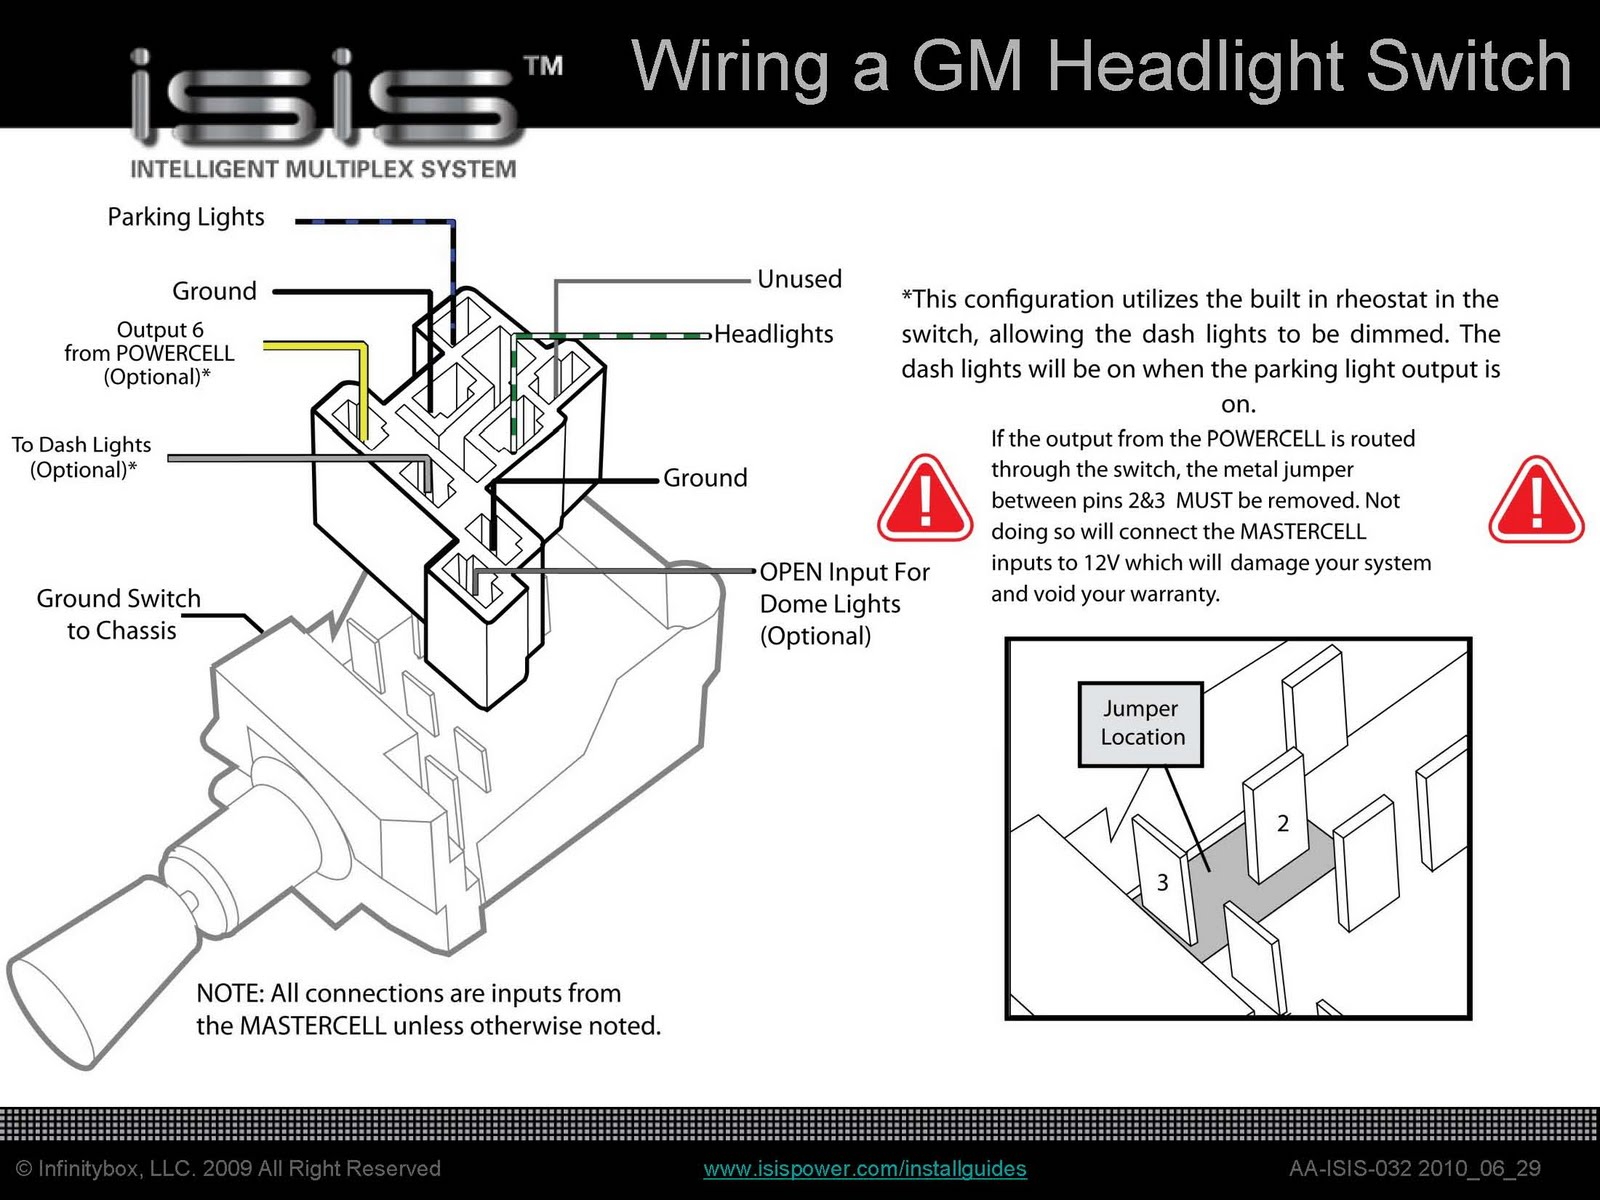 1955 chevy headlight switch wiring diagram labelled of ph meter pontiac grand am engine get free image